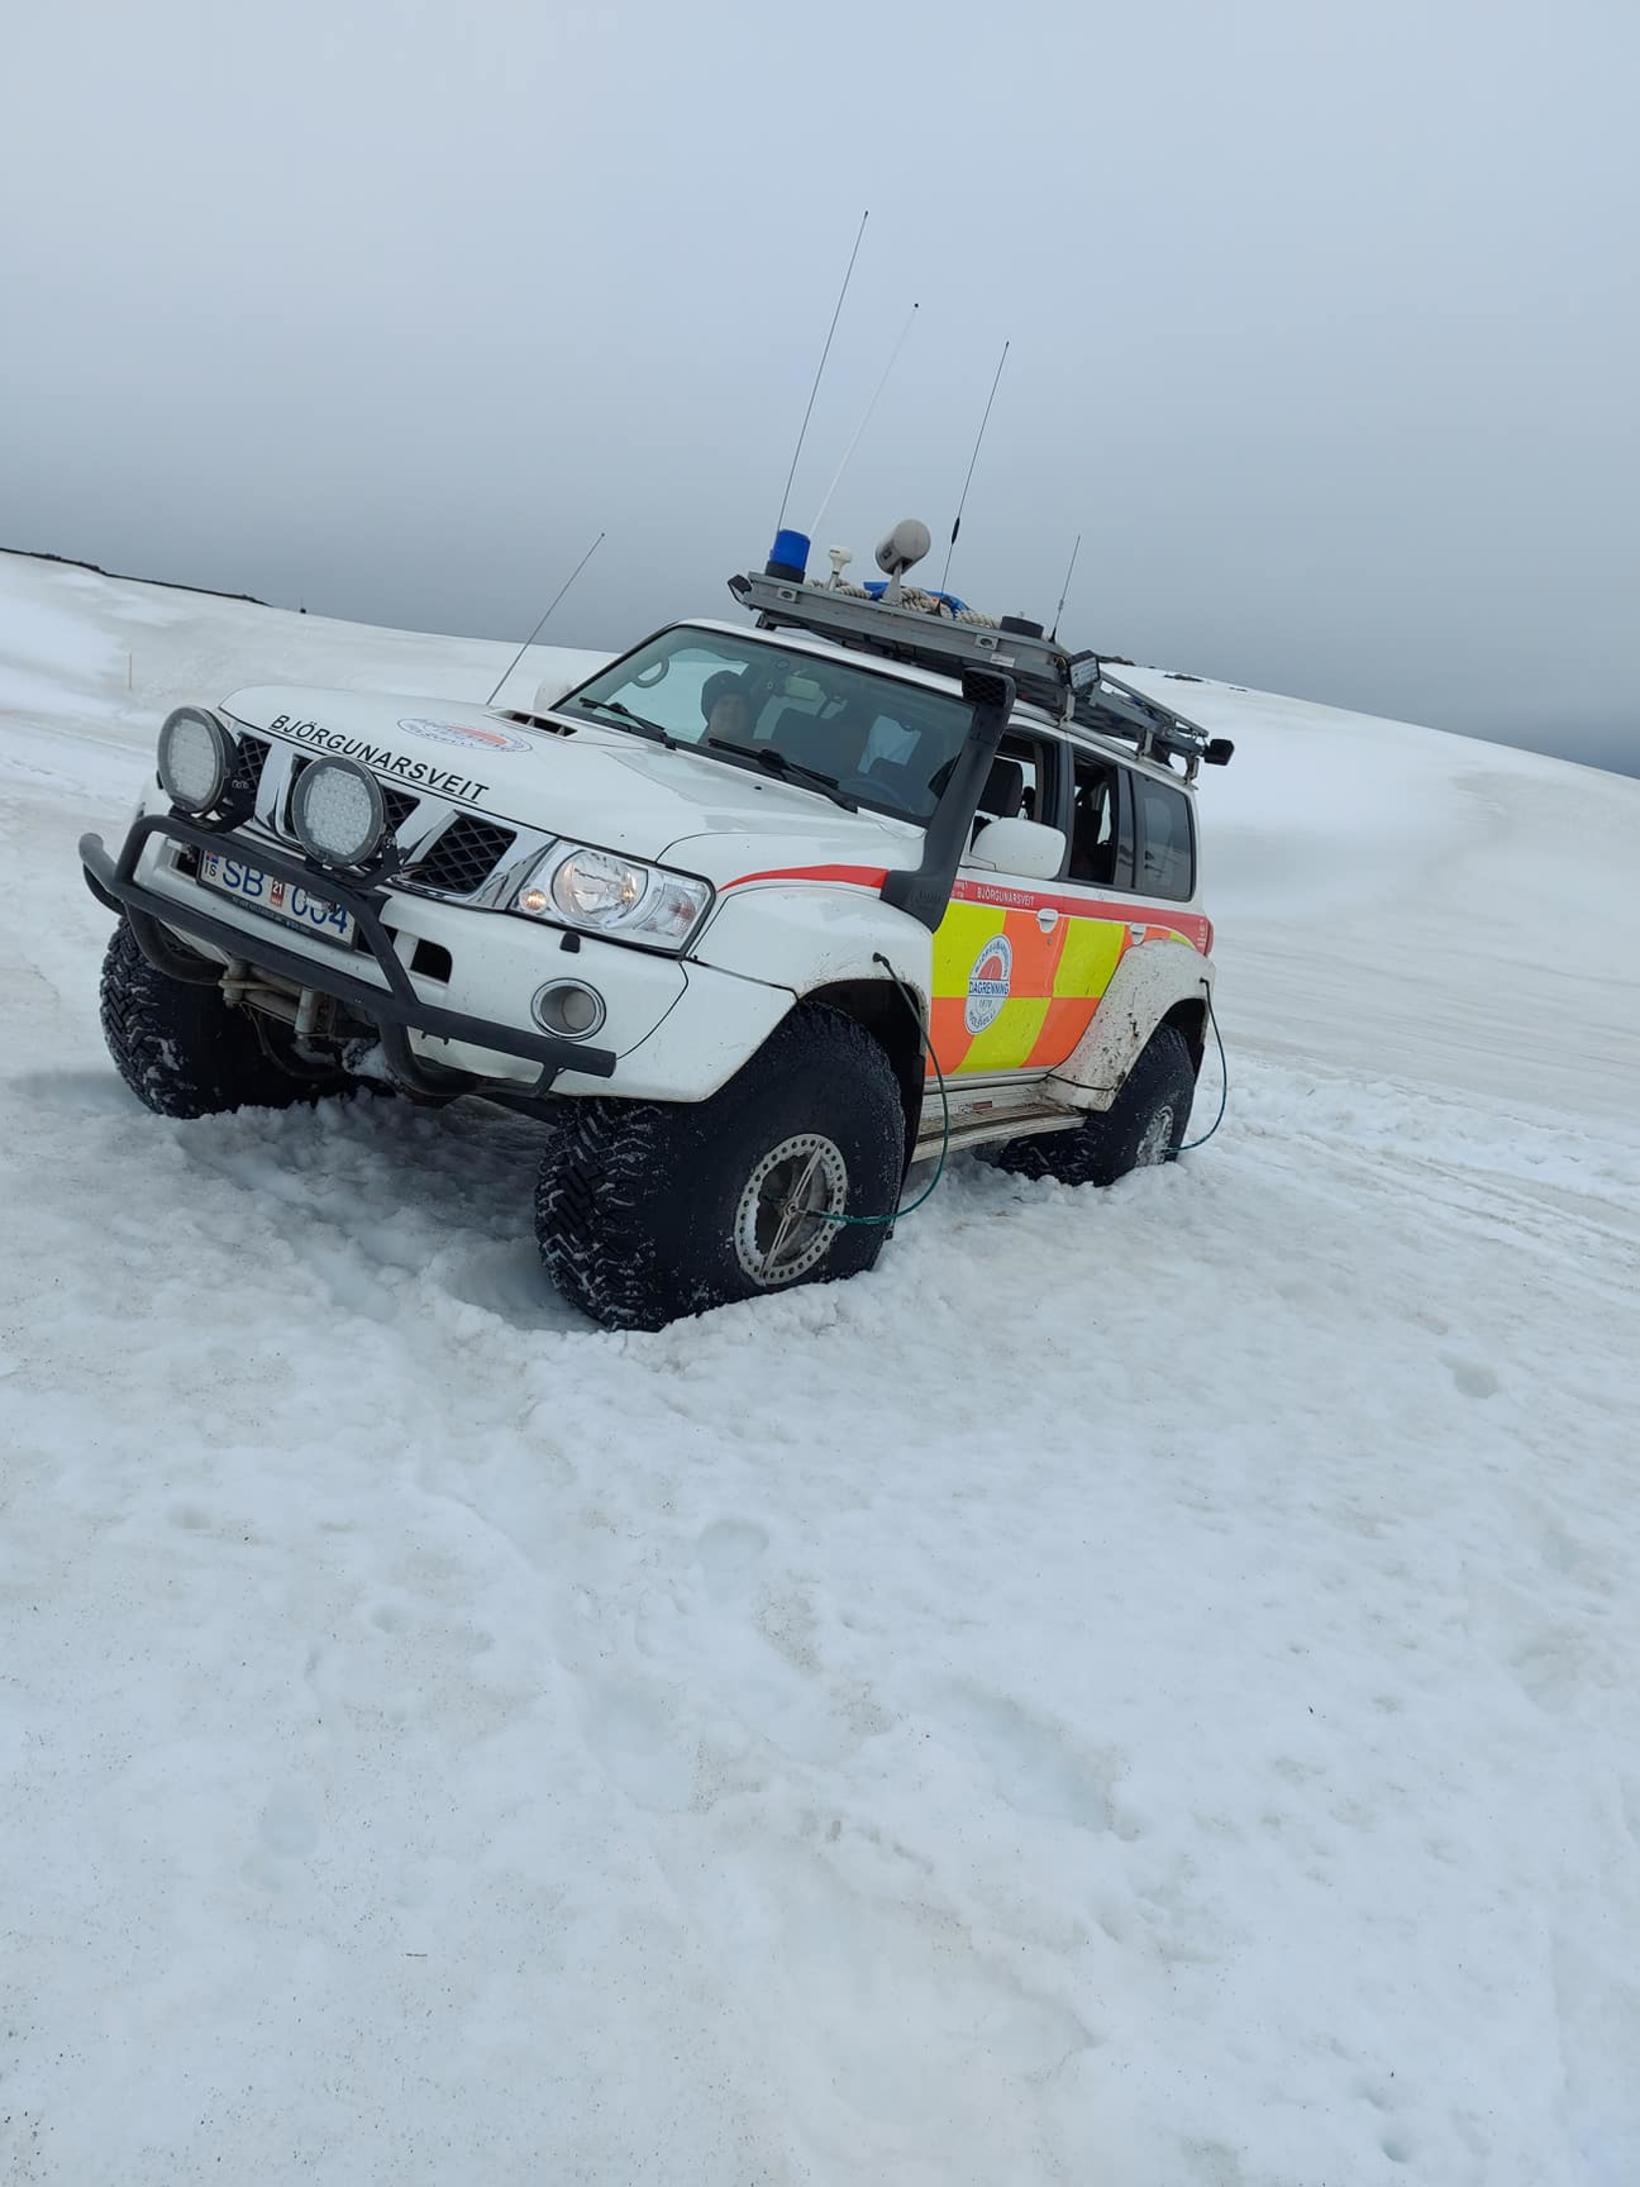 One of the rescue vehicles.